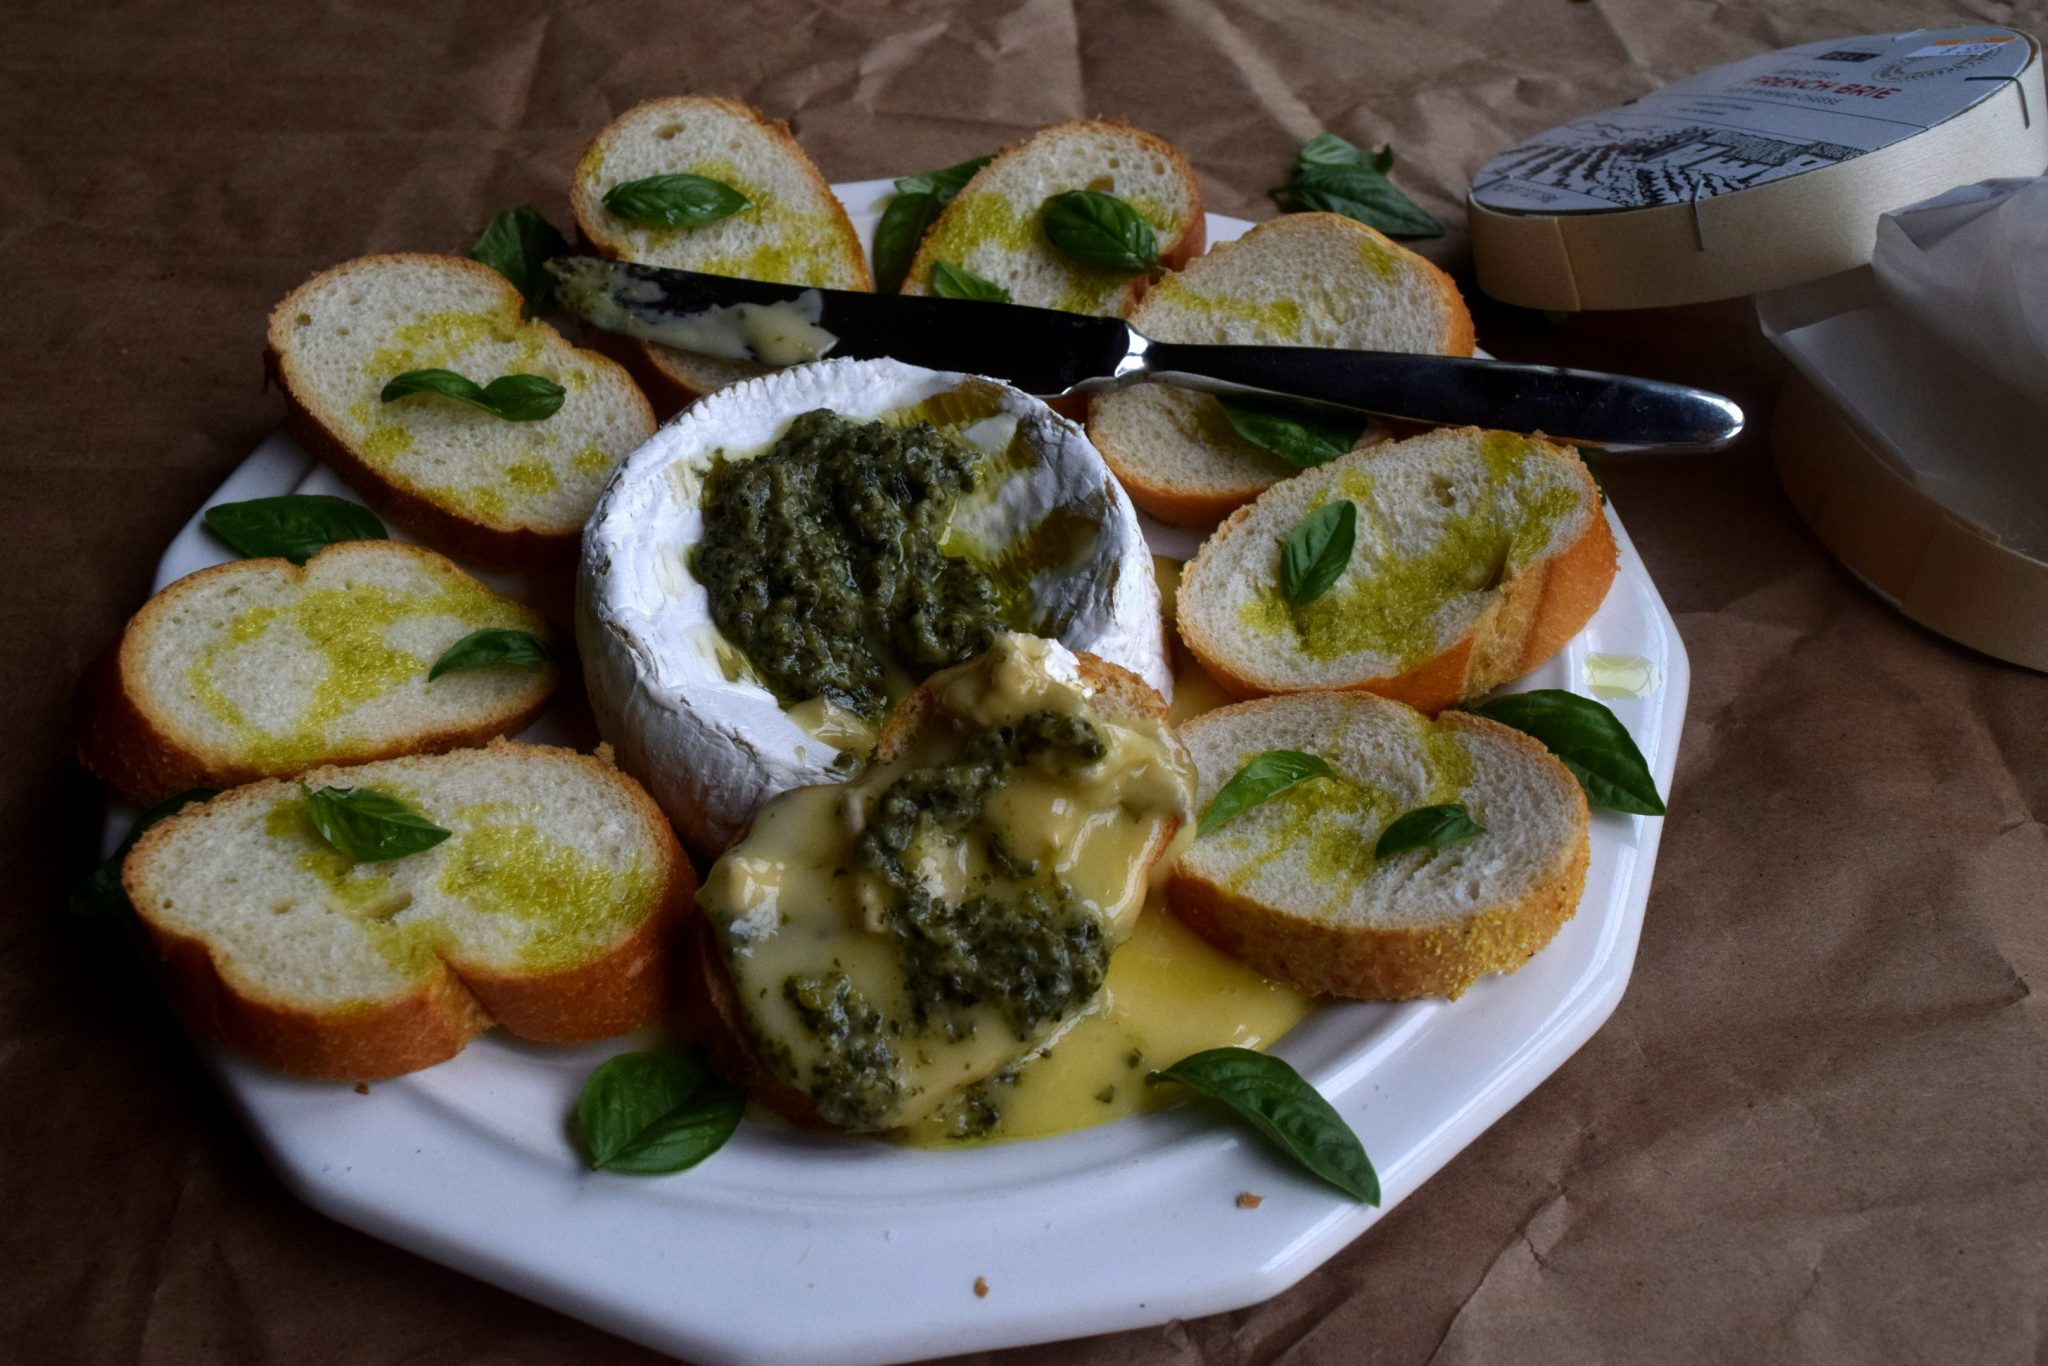 Baked Brie and Pesto